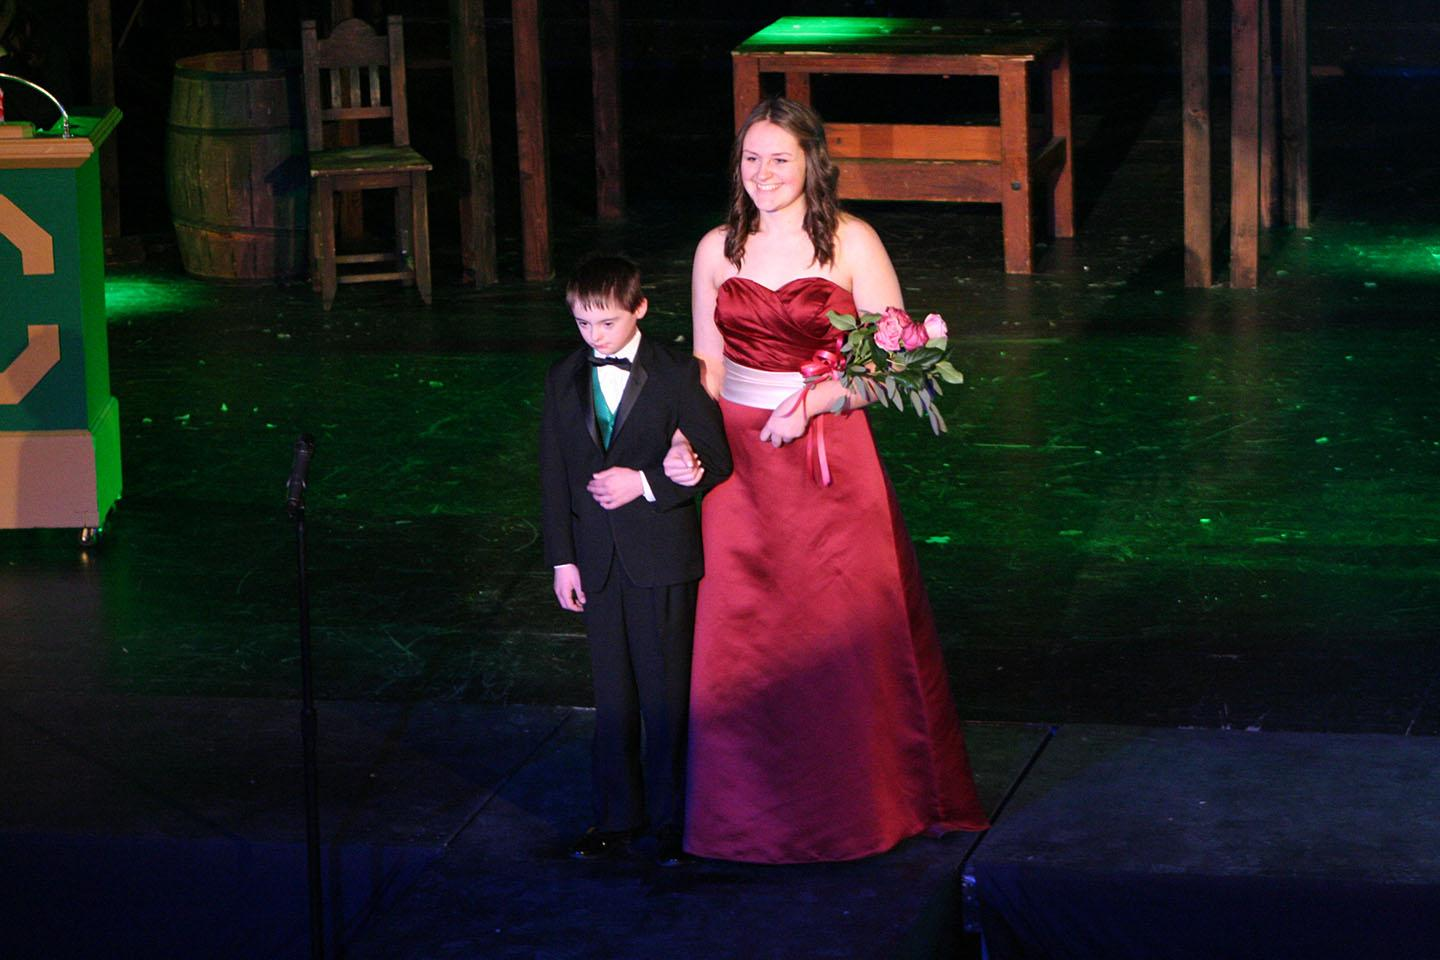 Kaytlin Gaines with her escort Thomas Gibson at the Rose Court voting assembly